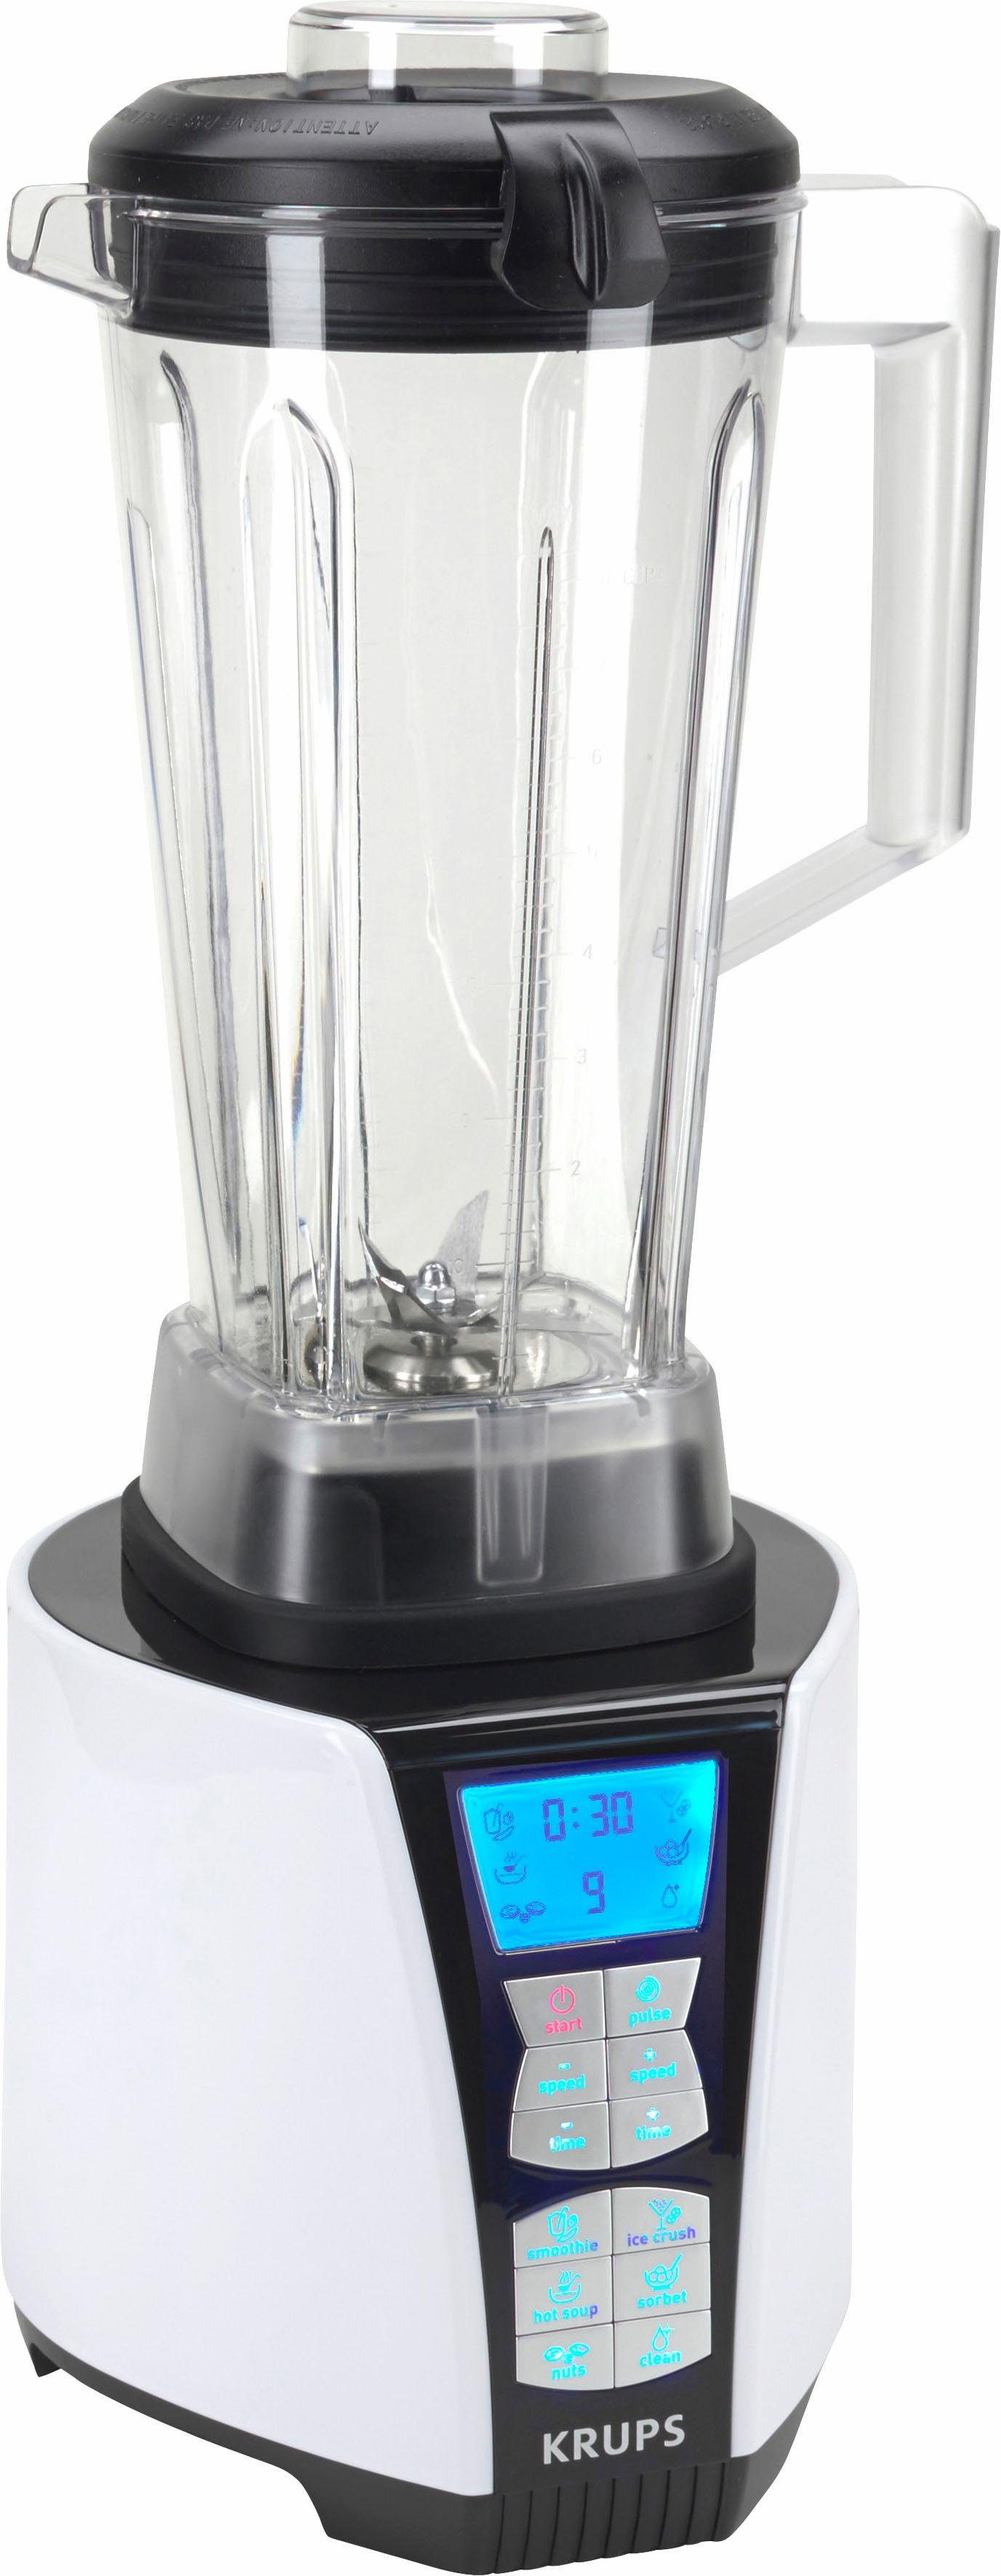 Krups High-Speed Standmixer Perfect Mix 9000 KB7030, 1500 Watt